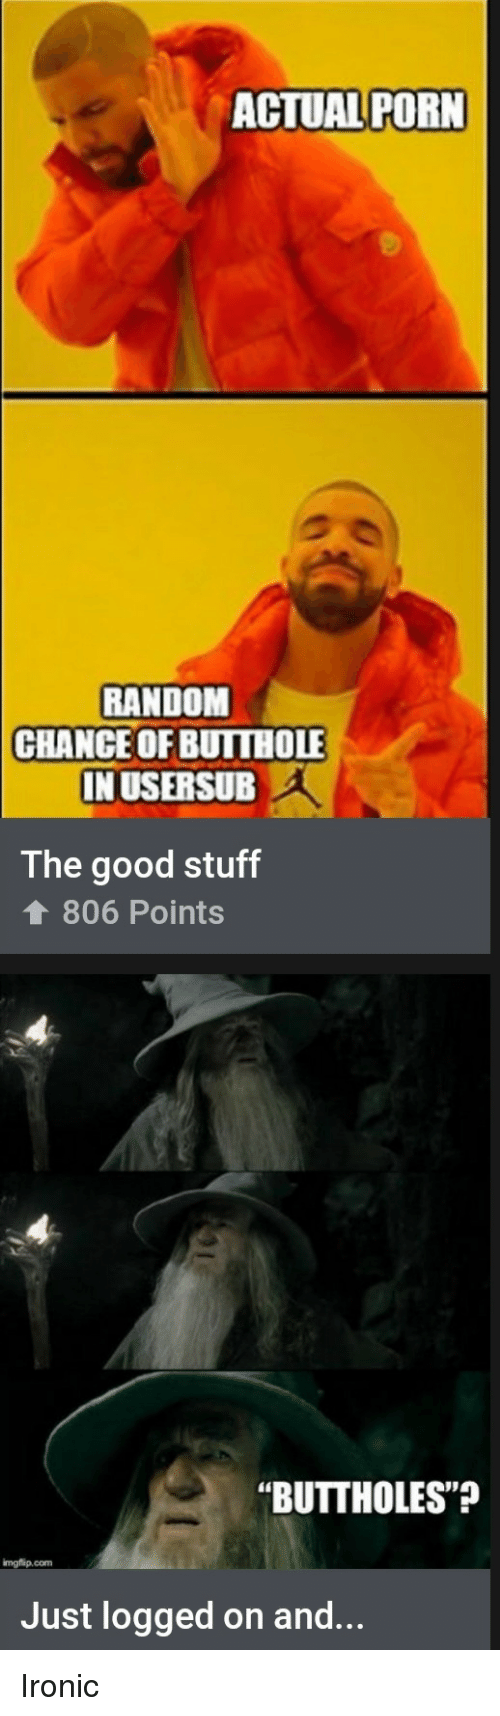 """Usersub: ACTUAL PORN  RANDOM  CHANCEOF BUITHOLE  IN USERSUB  The good stuff  806 Points  """"BUTTHOLES""""  imgflip.com  Just logged on and... Ironic"""